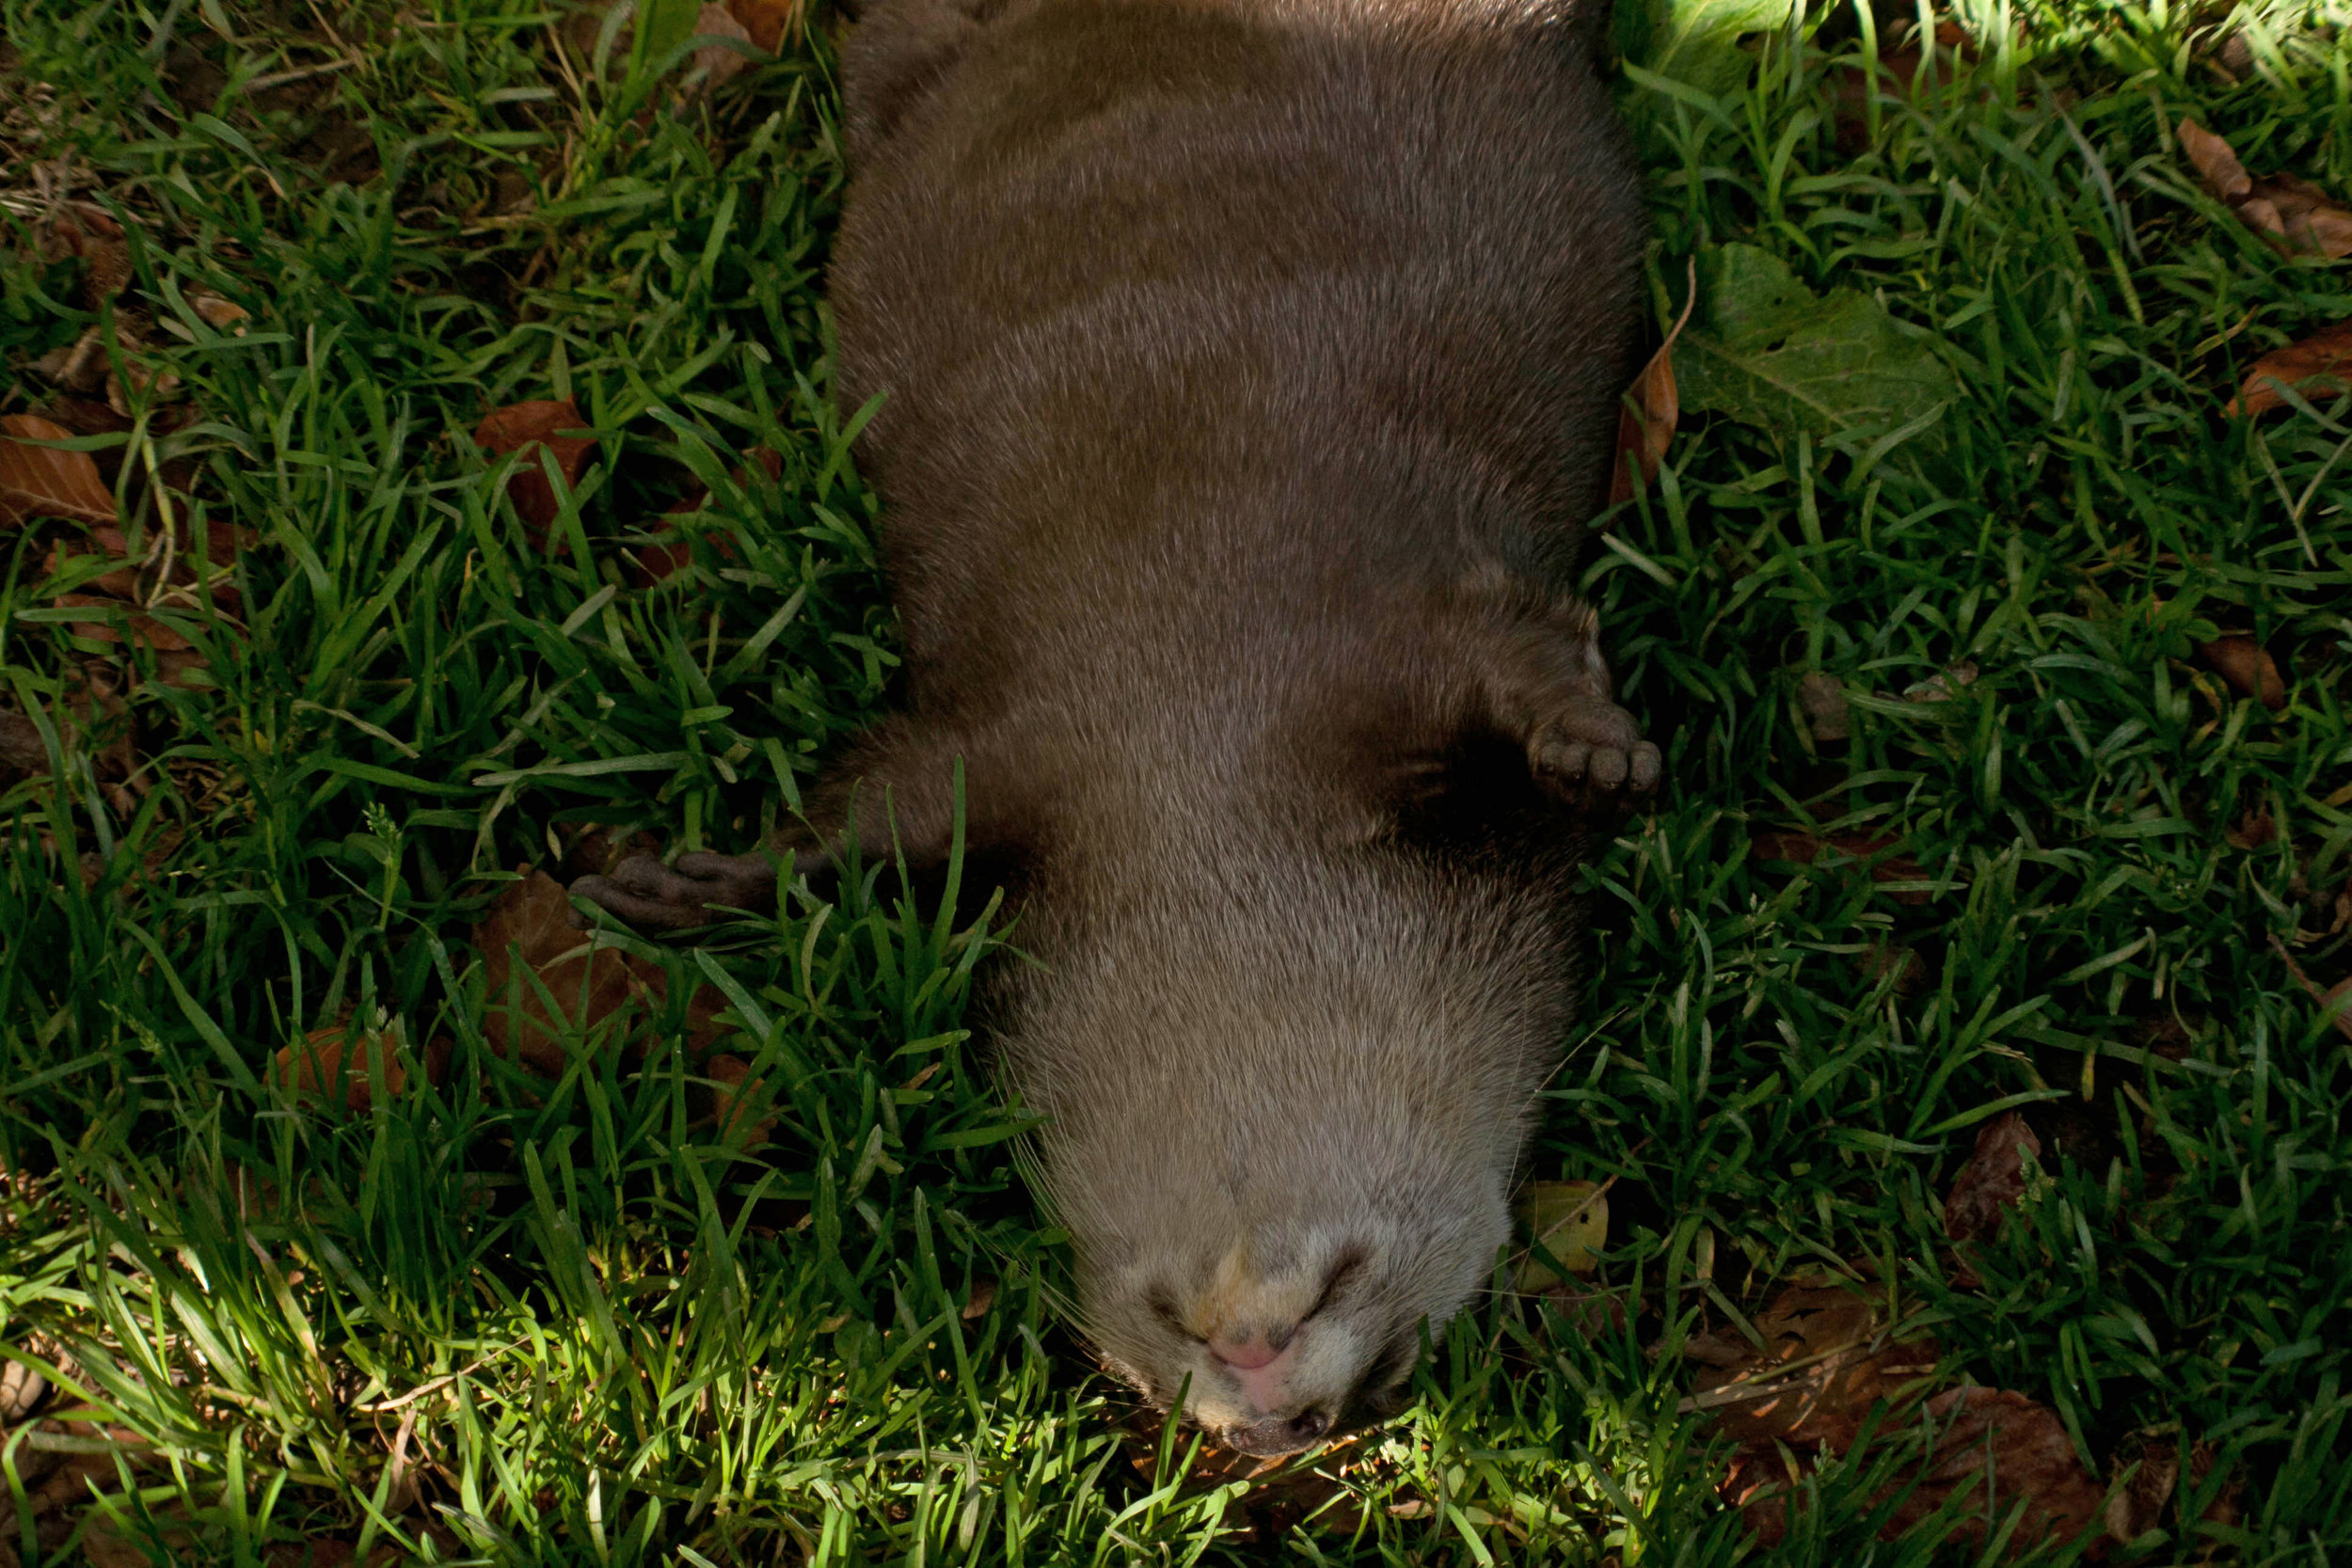 Otter Gets Some Serious Relaxing Done in the Grass